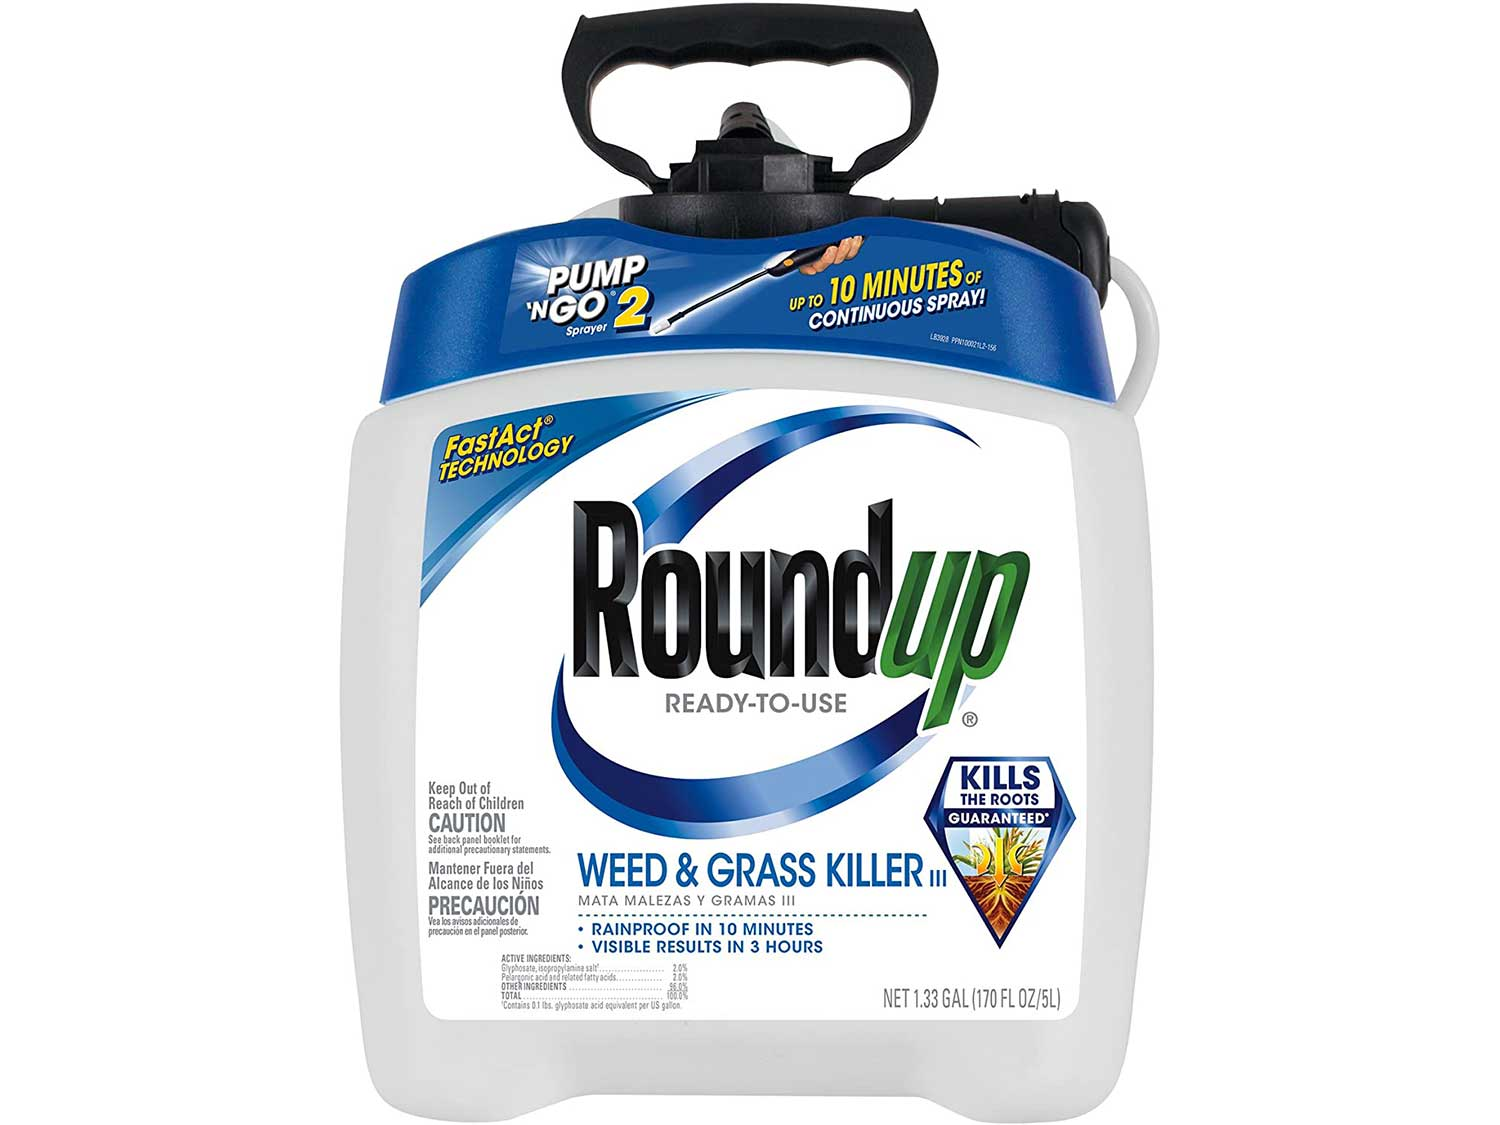 Roundup Ready-To-Use Weed & Grass Killer III – with Pump 'N Go 2 Sprayer, Use in & Around Vegetable Gardens, Tree Rings, Flower Beds, Patios & More, Kills to the Root, 1.33 gal